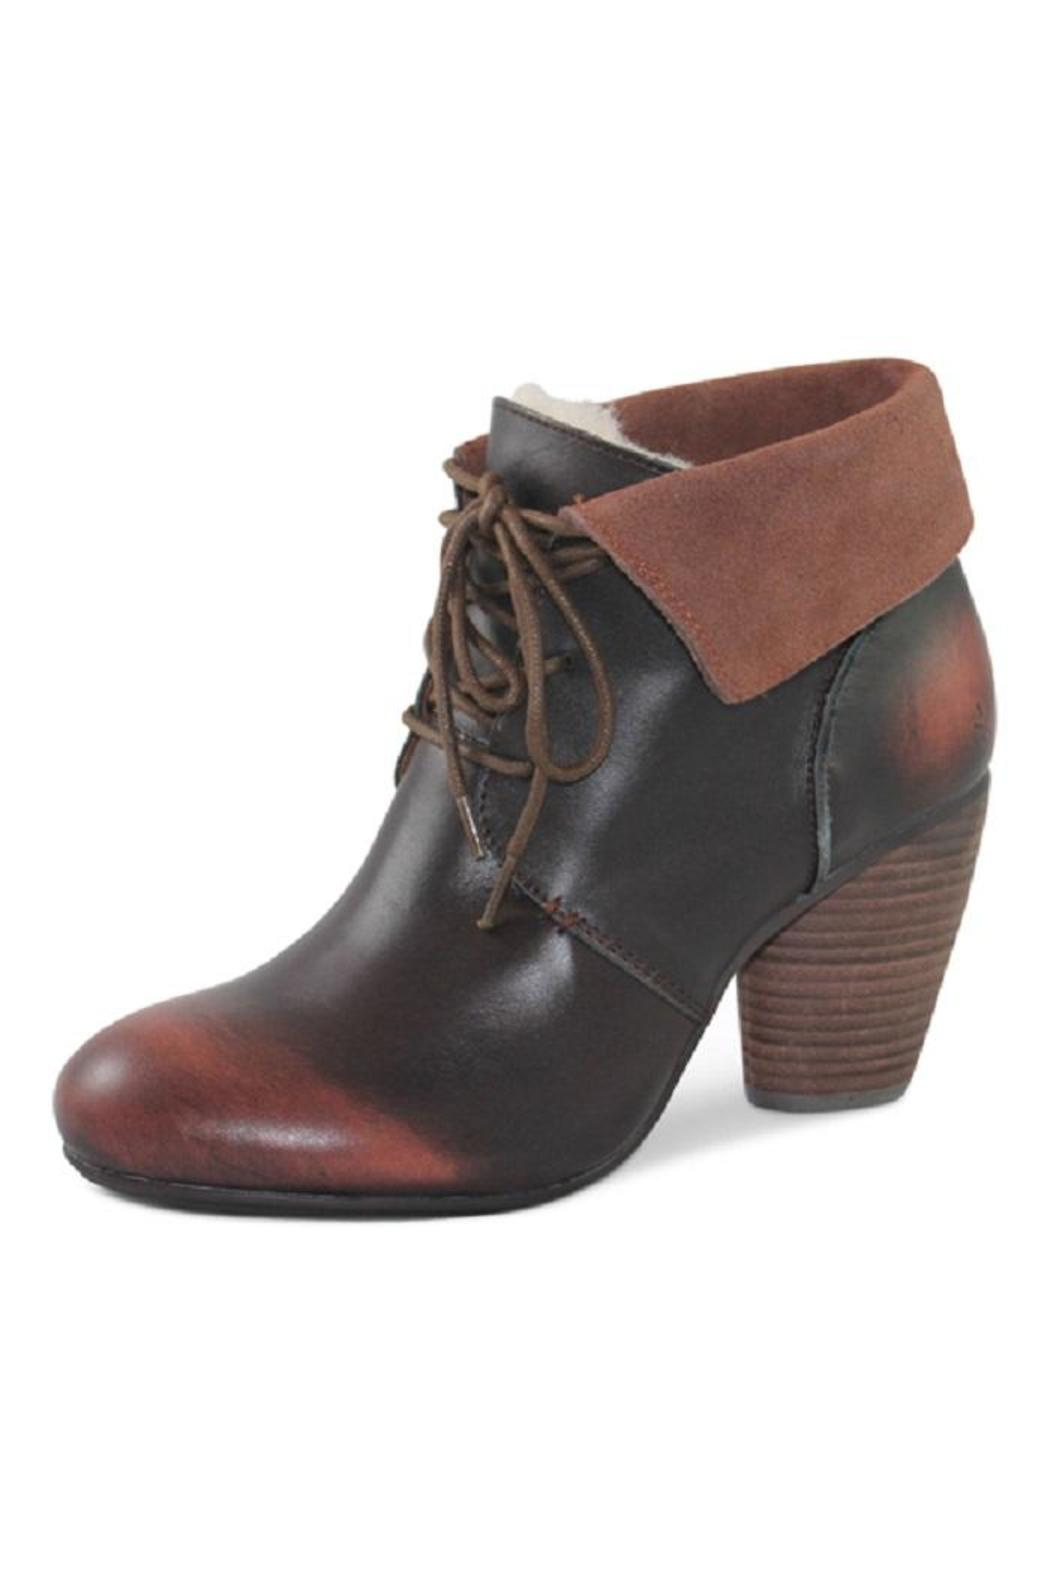 Shop our collection of women's fashionable boots & booties in a variety of styles! FREE shipping on orders $60 or more.